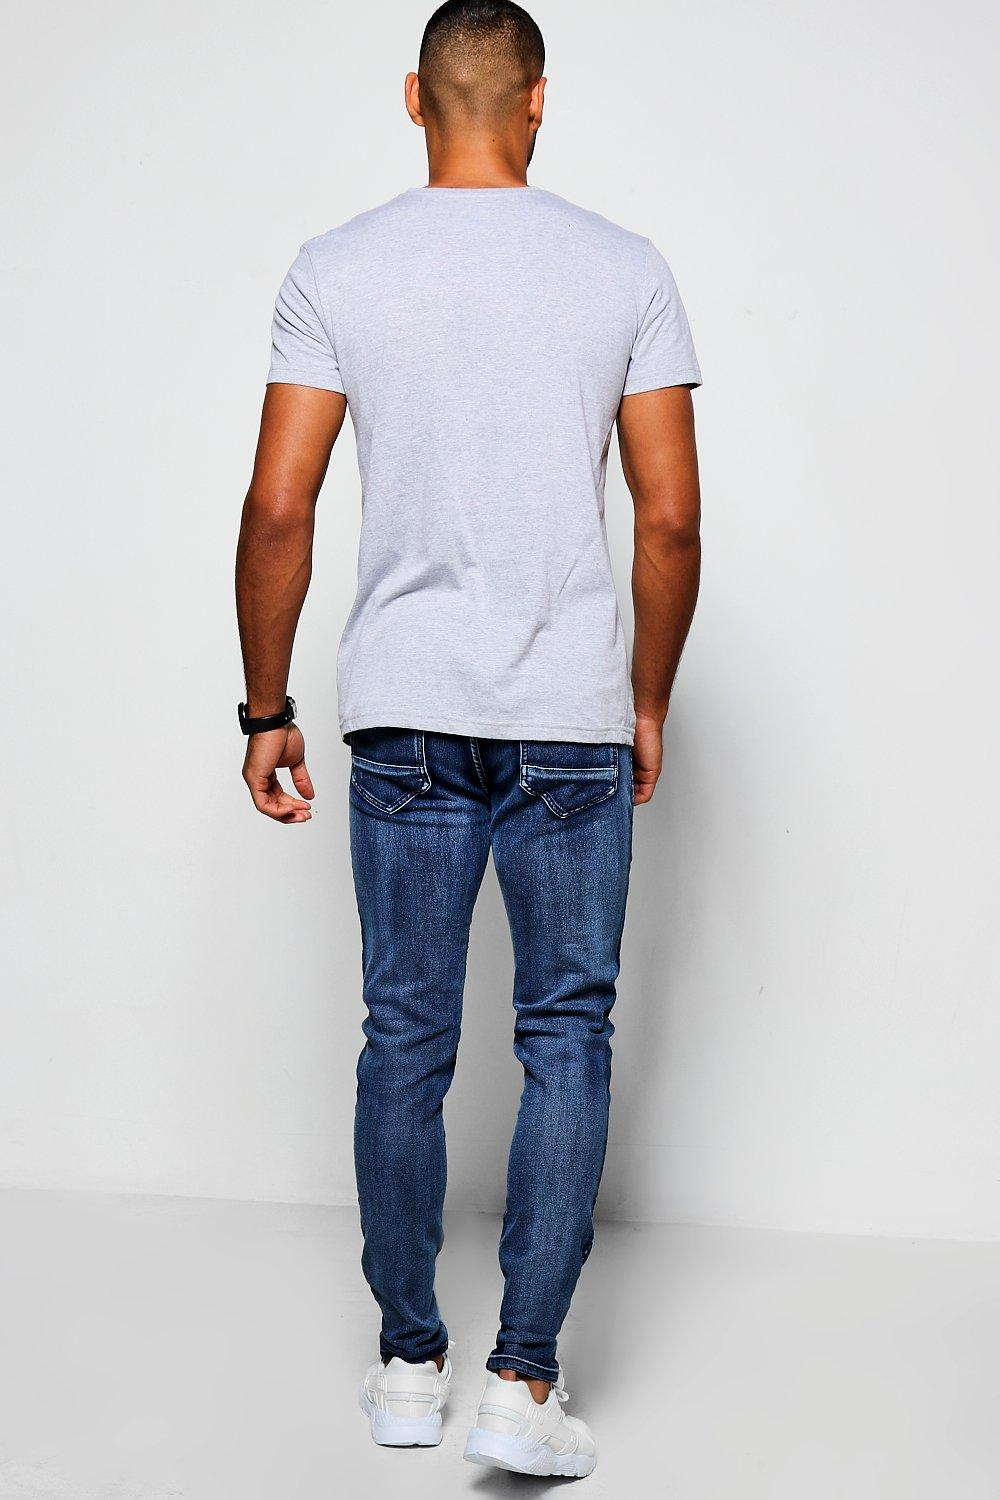 10 of the best denim jeans for men Previous slide Next slide 1 of 13 View All Skip Ad Denim jeans are one of the most longstanding staples of the menswear world, and while trends come and go (and inadvisedly come back again), our love of the material remains consistent.